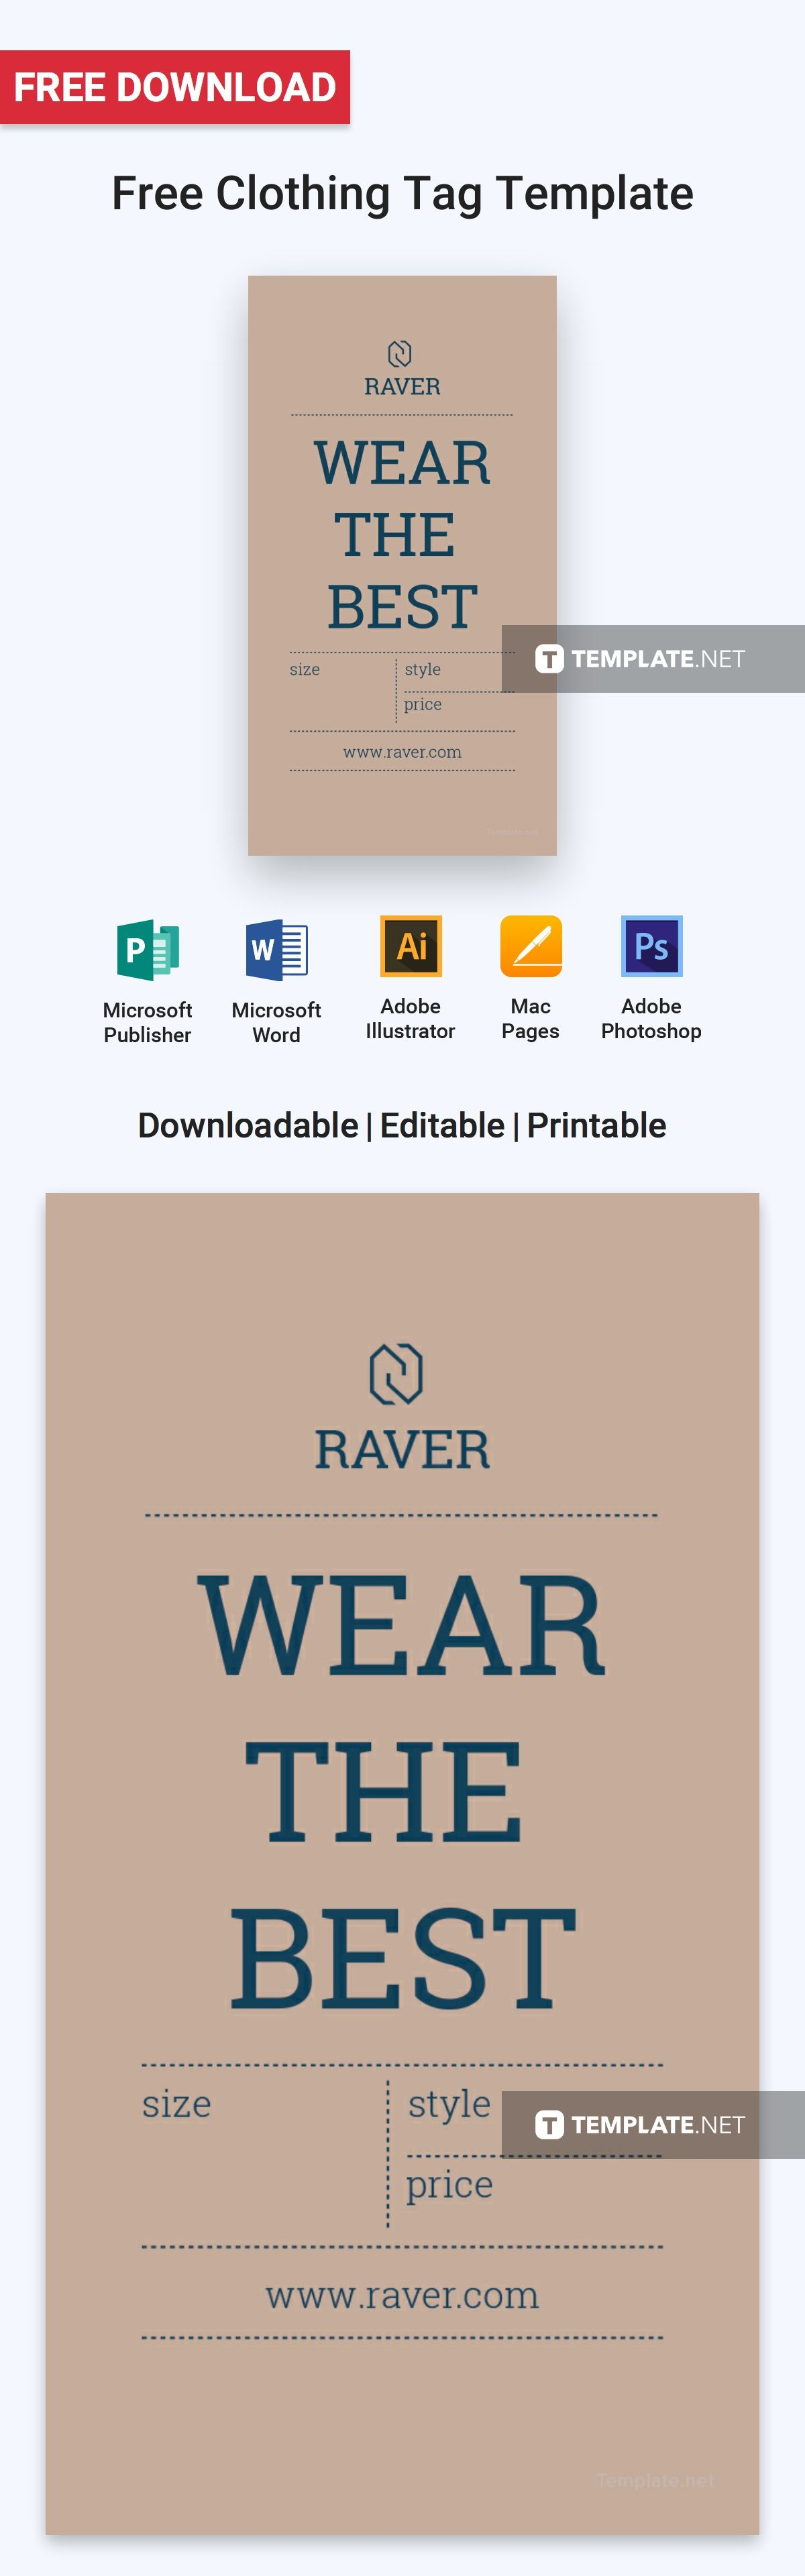 free clothing tag tag templates clothing tags and template